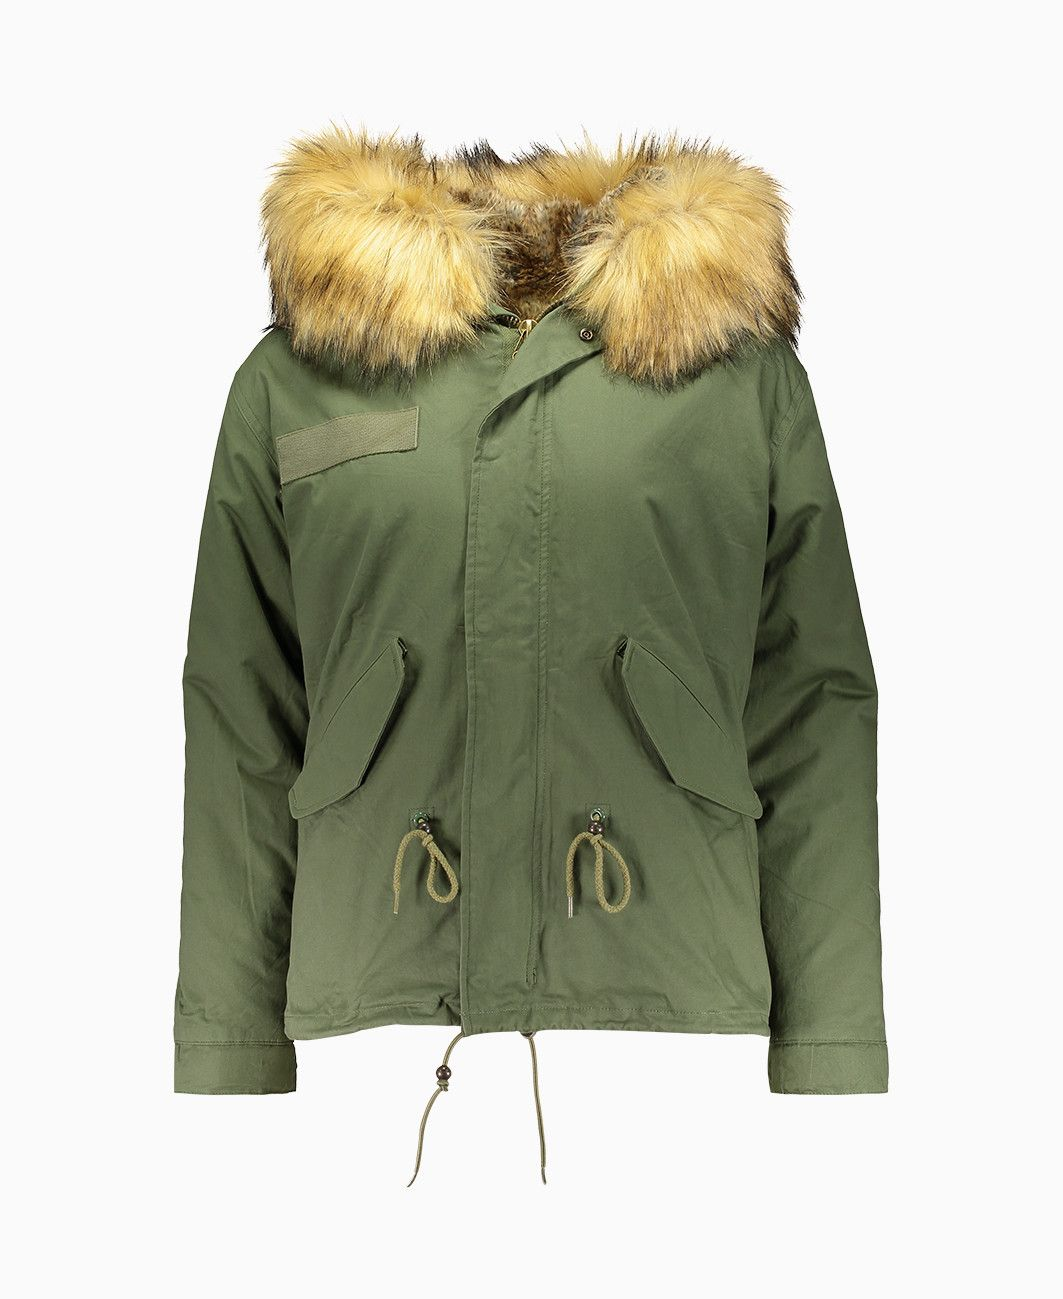 9df4fedeb4d Bobbi Parka - Faux Fur Parka - Green - Coats & Jackets - Womens ...